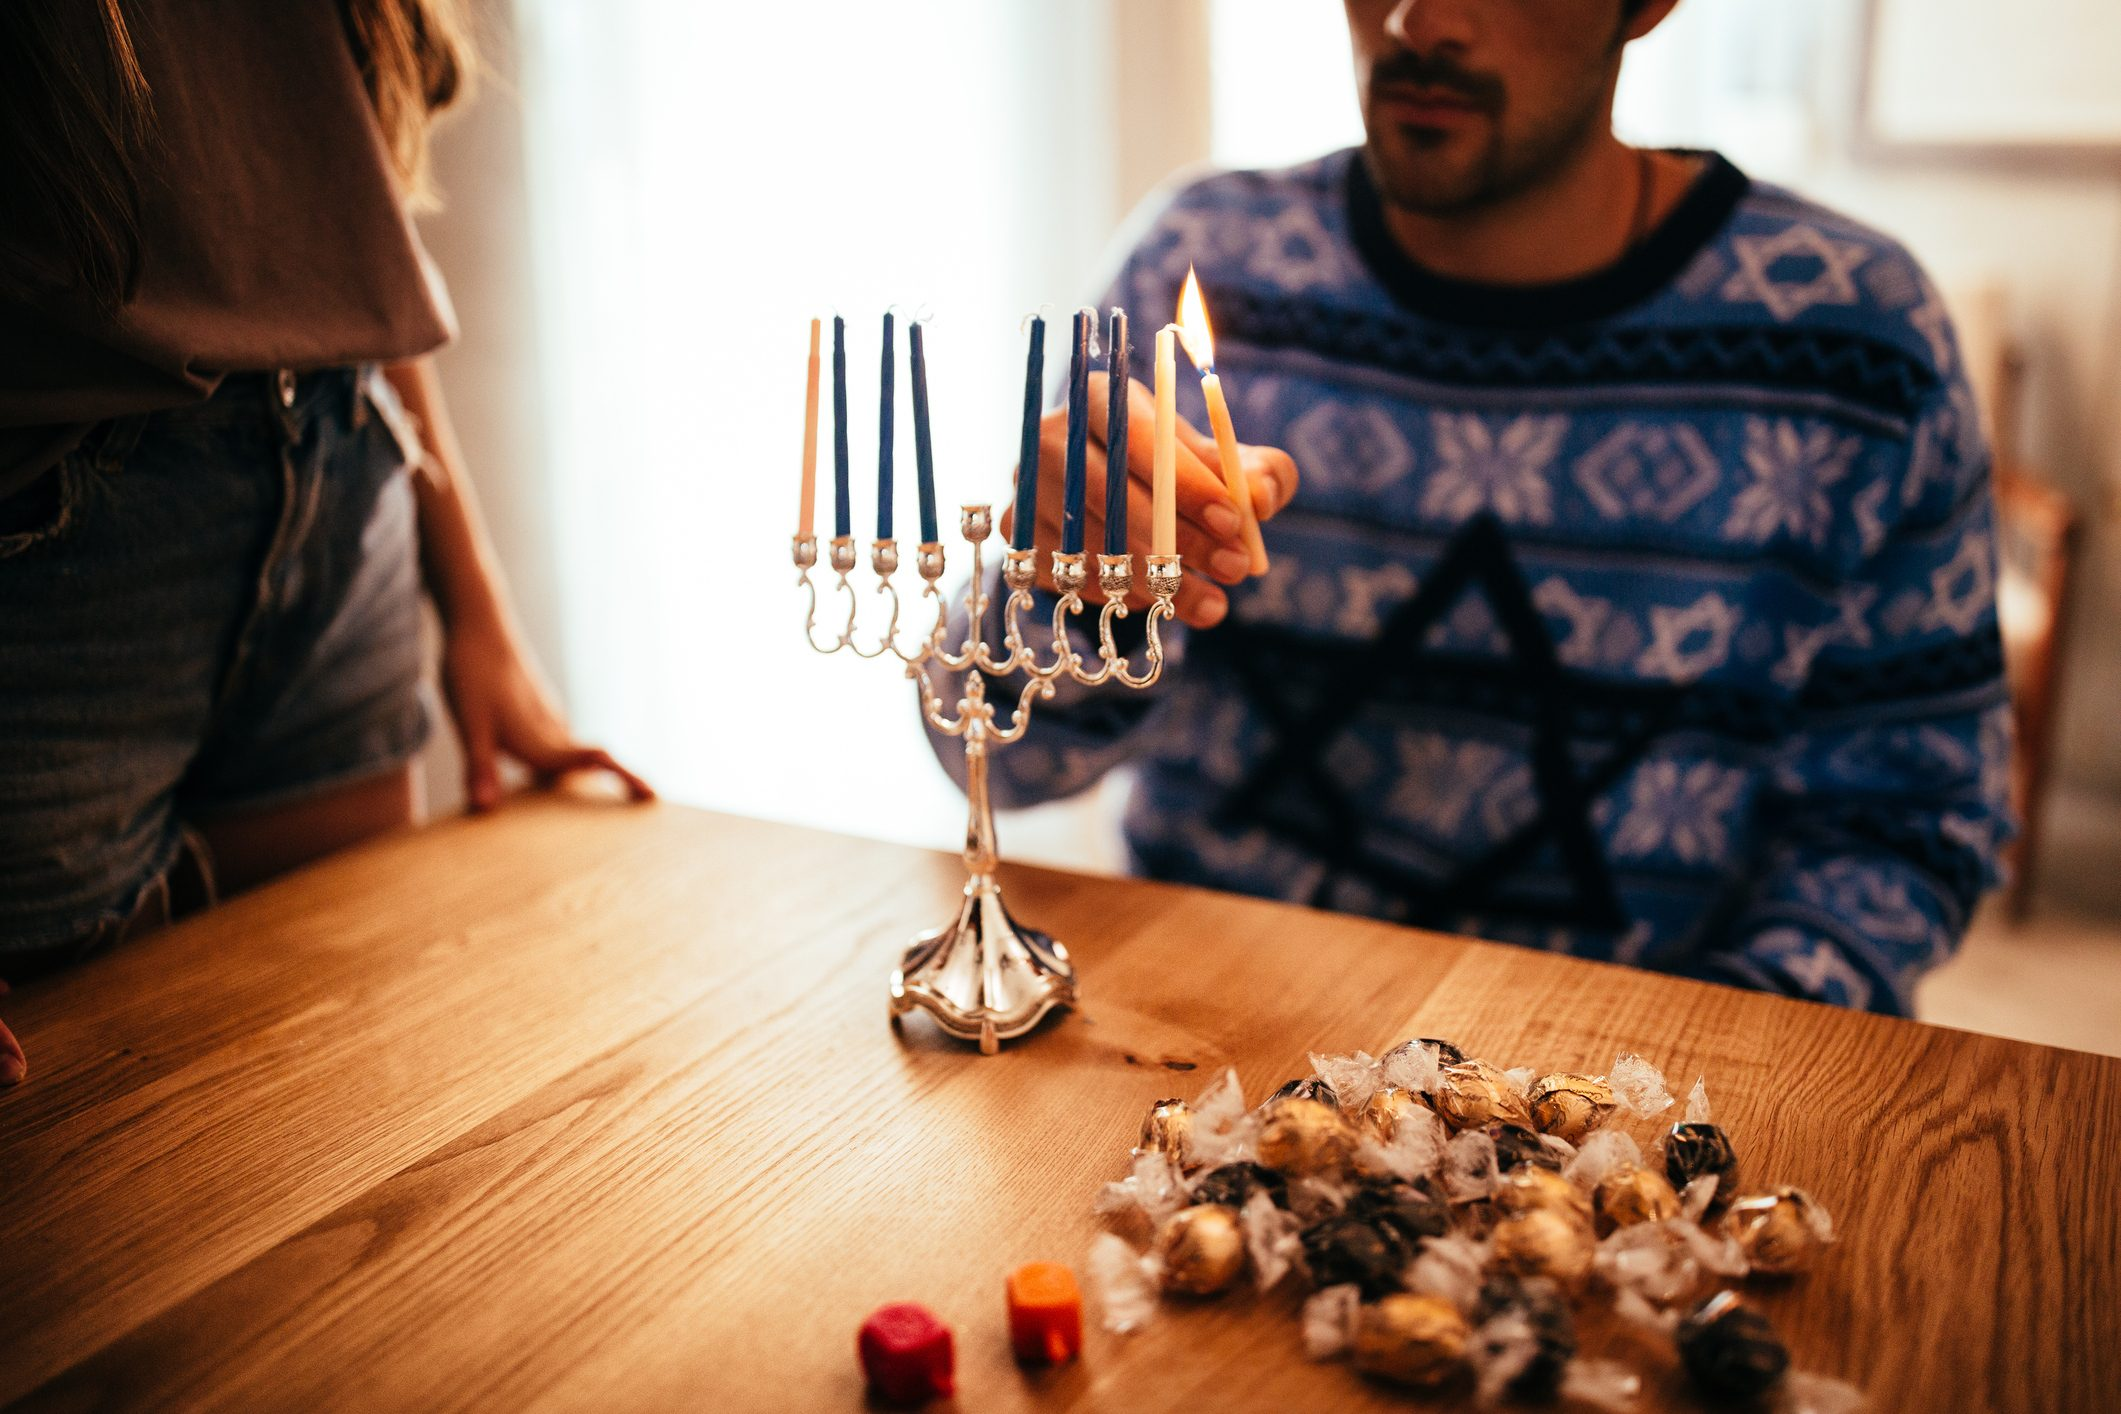 Young man lighting candlesticks on traditional jewish menorah for Hannukah